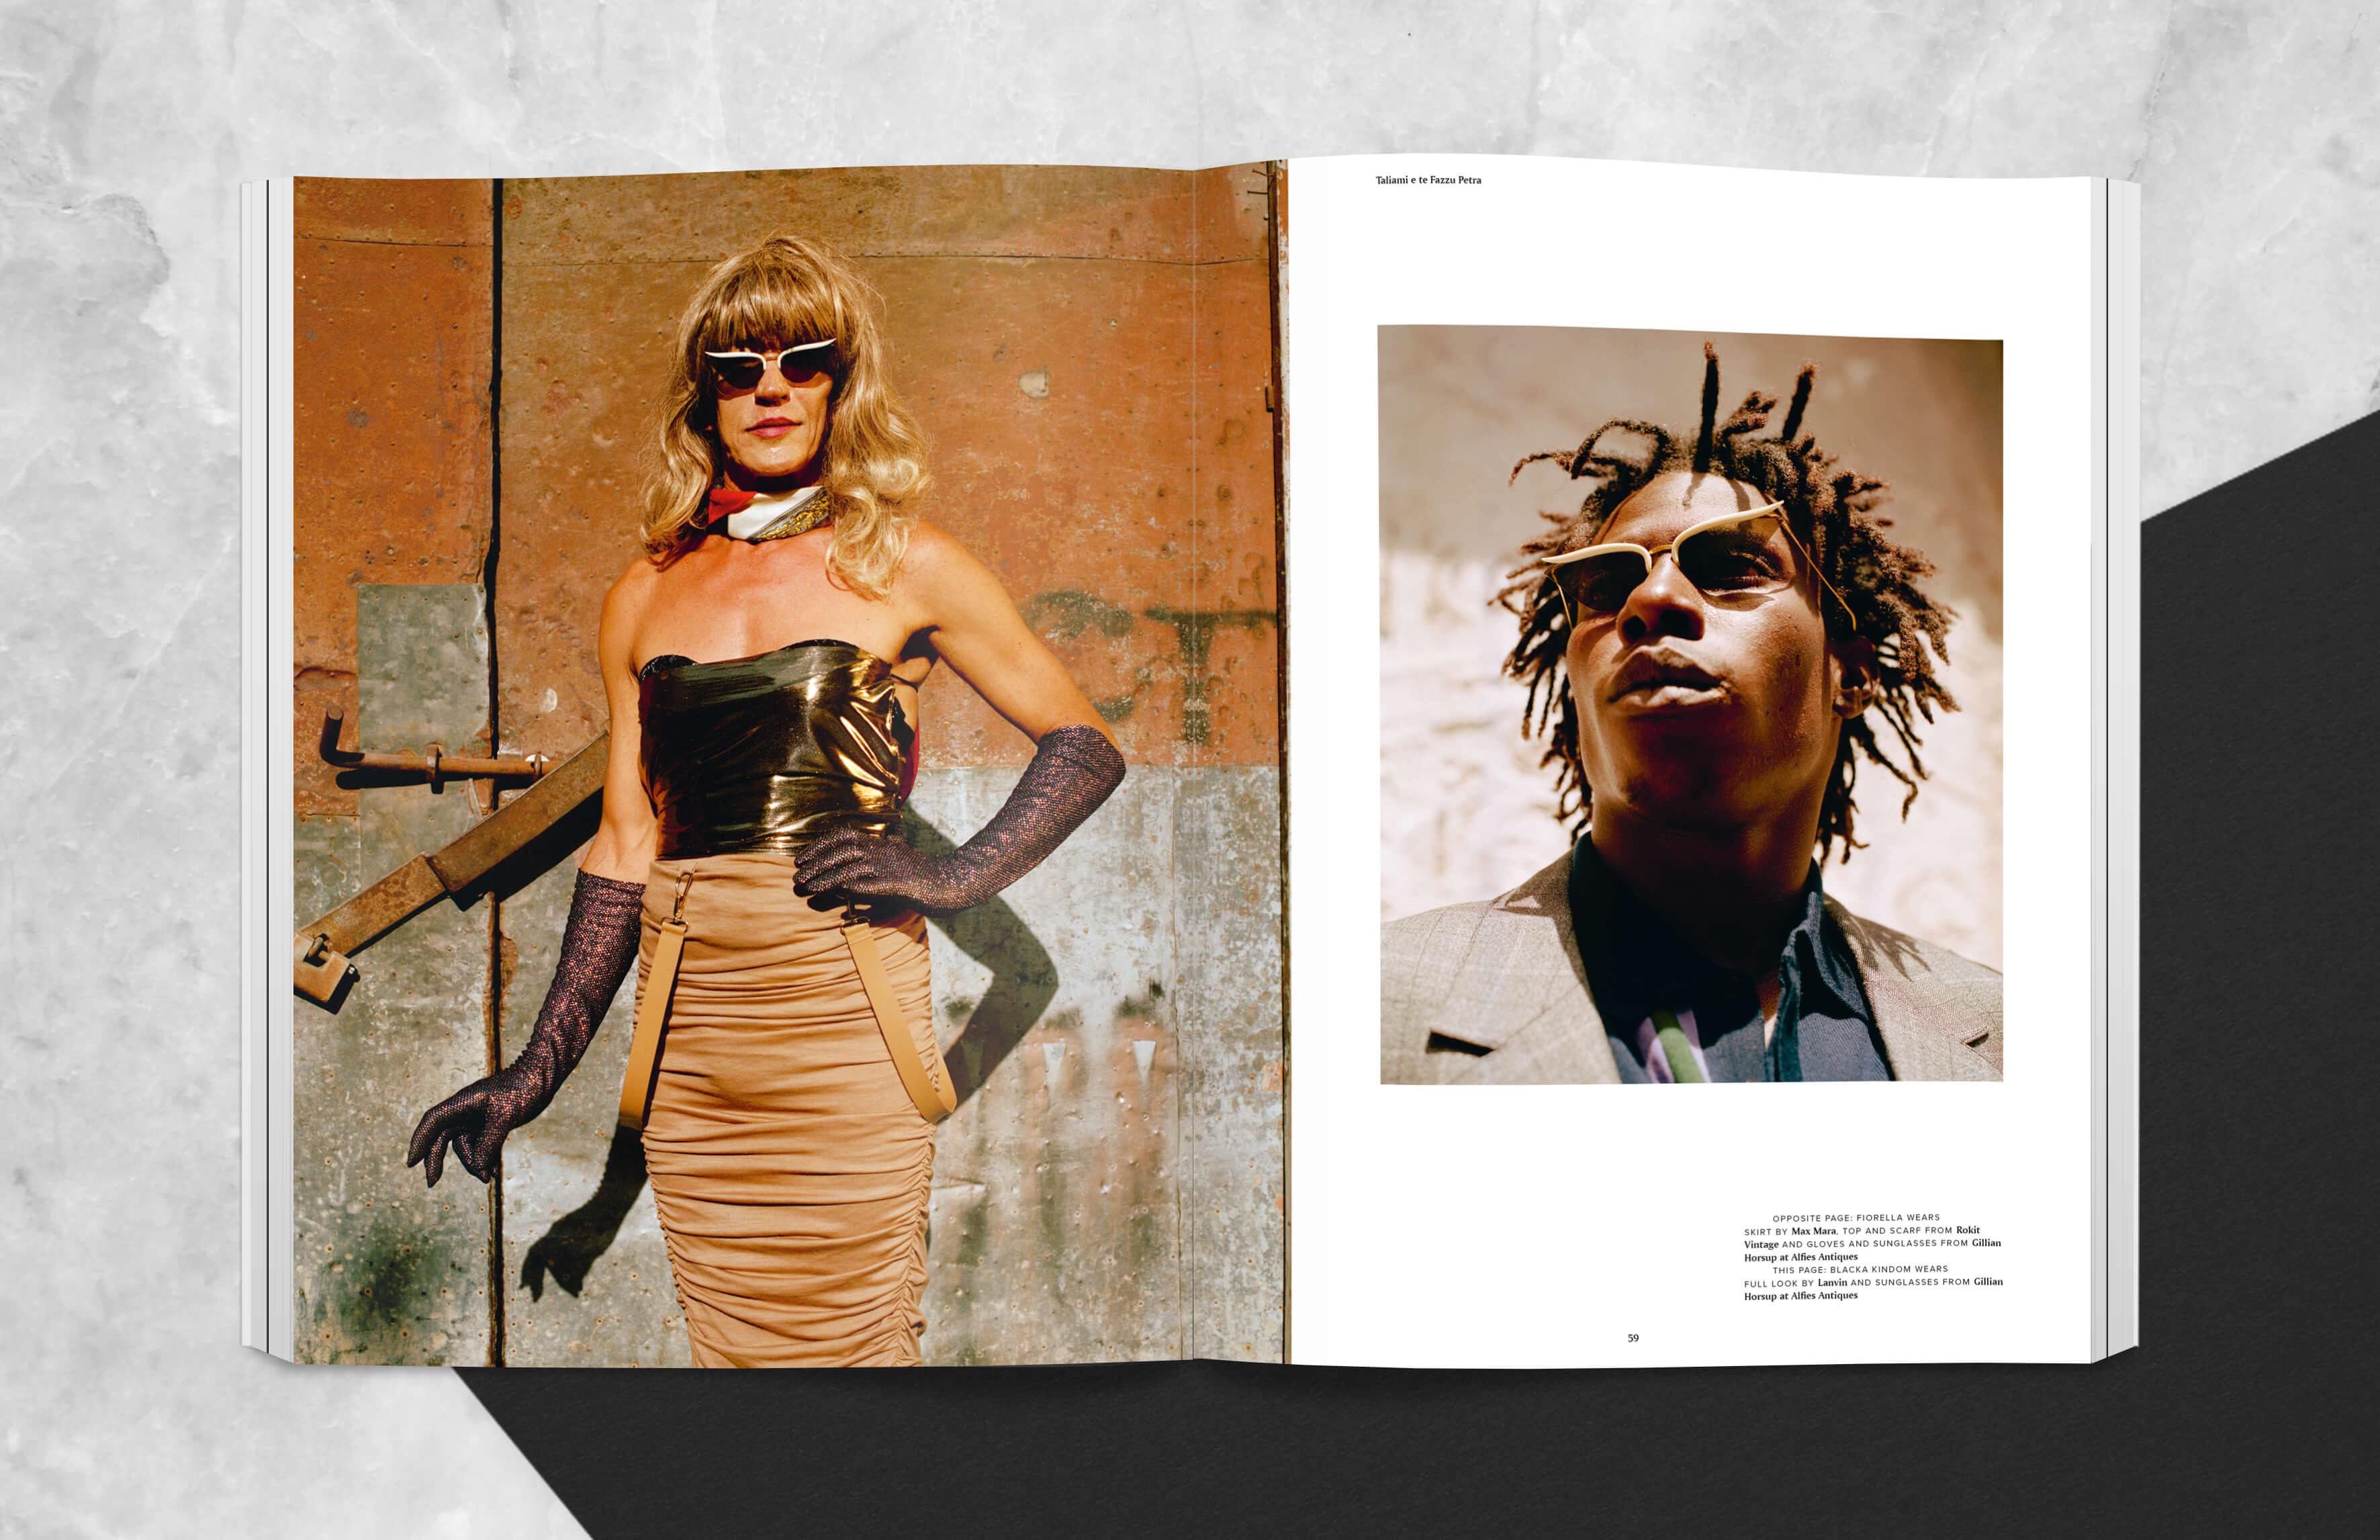 magazine spread showing two fashion images